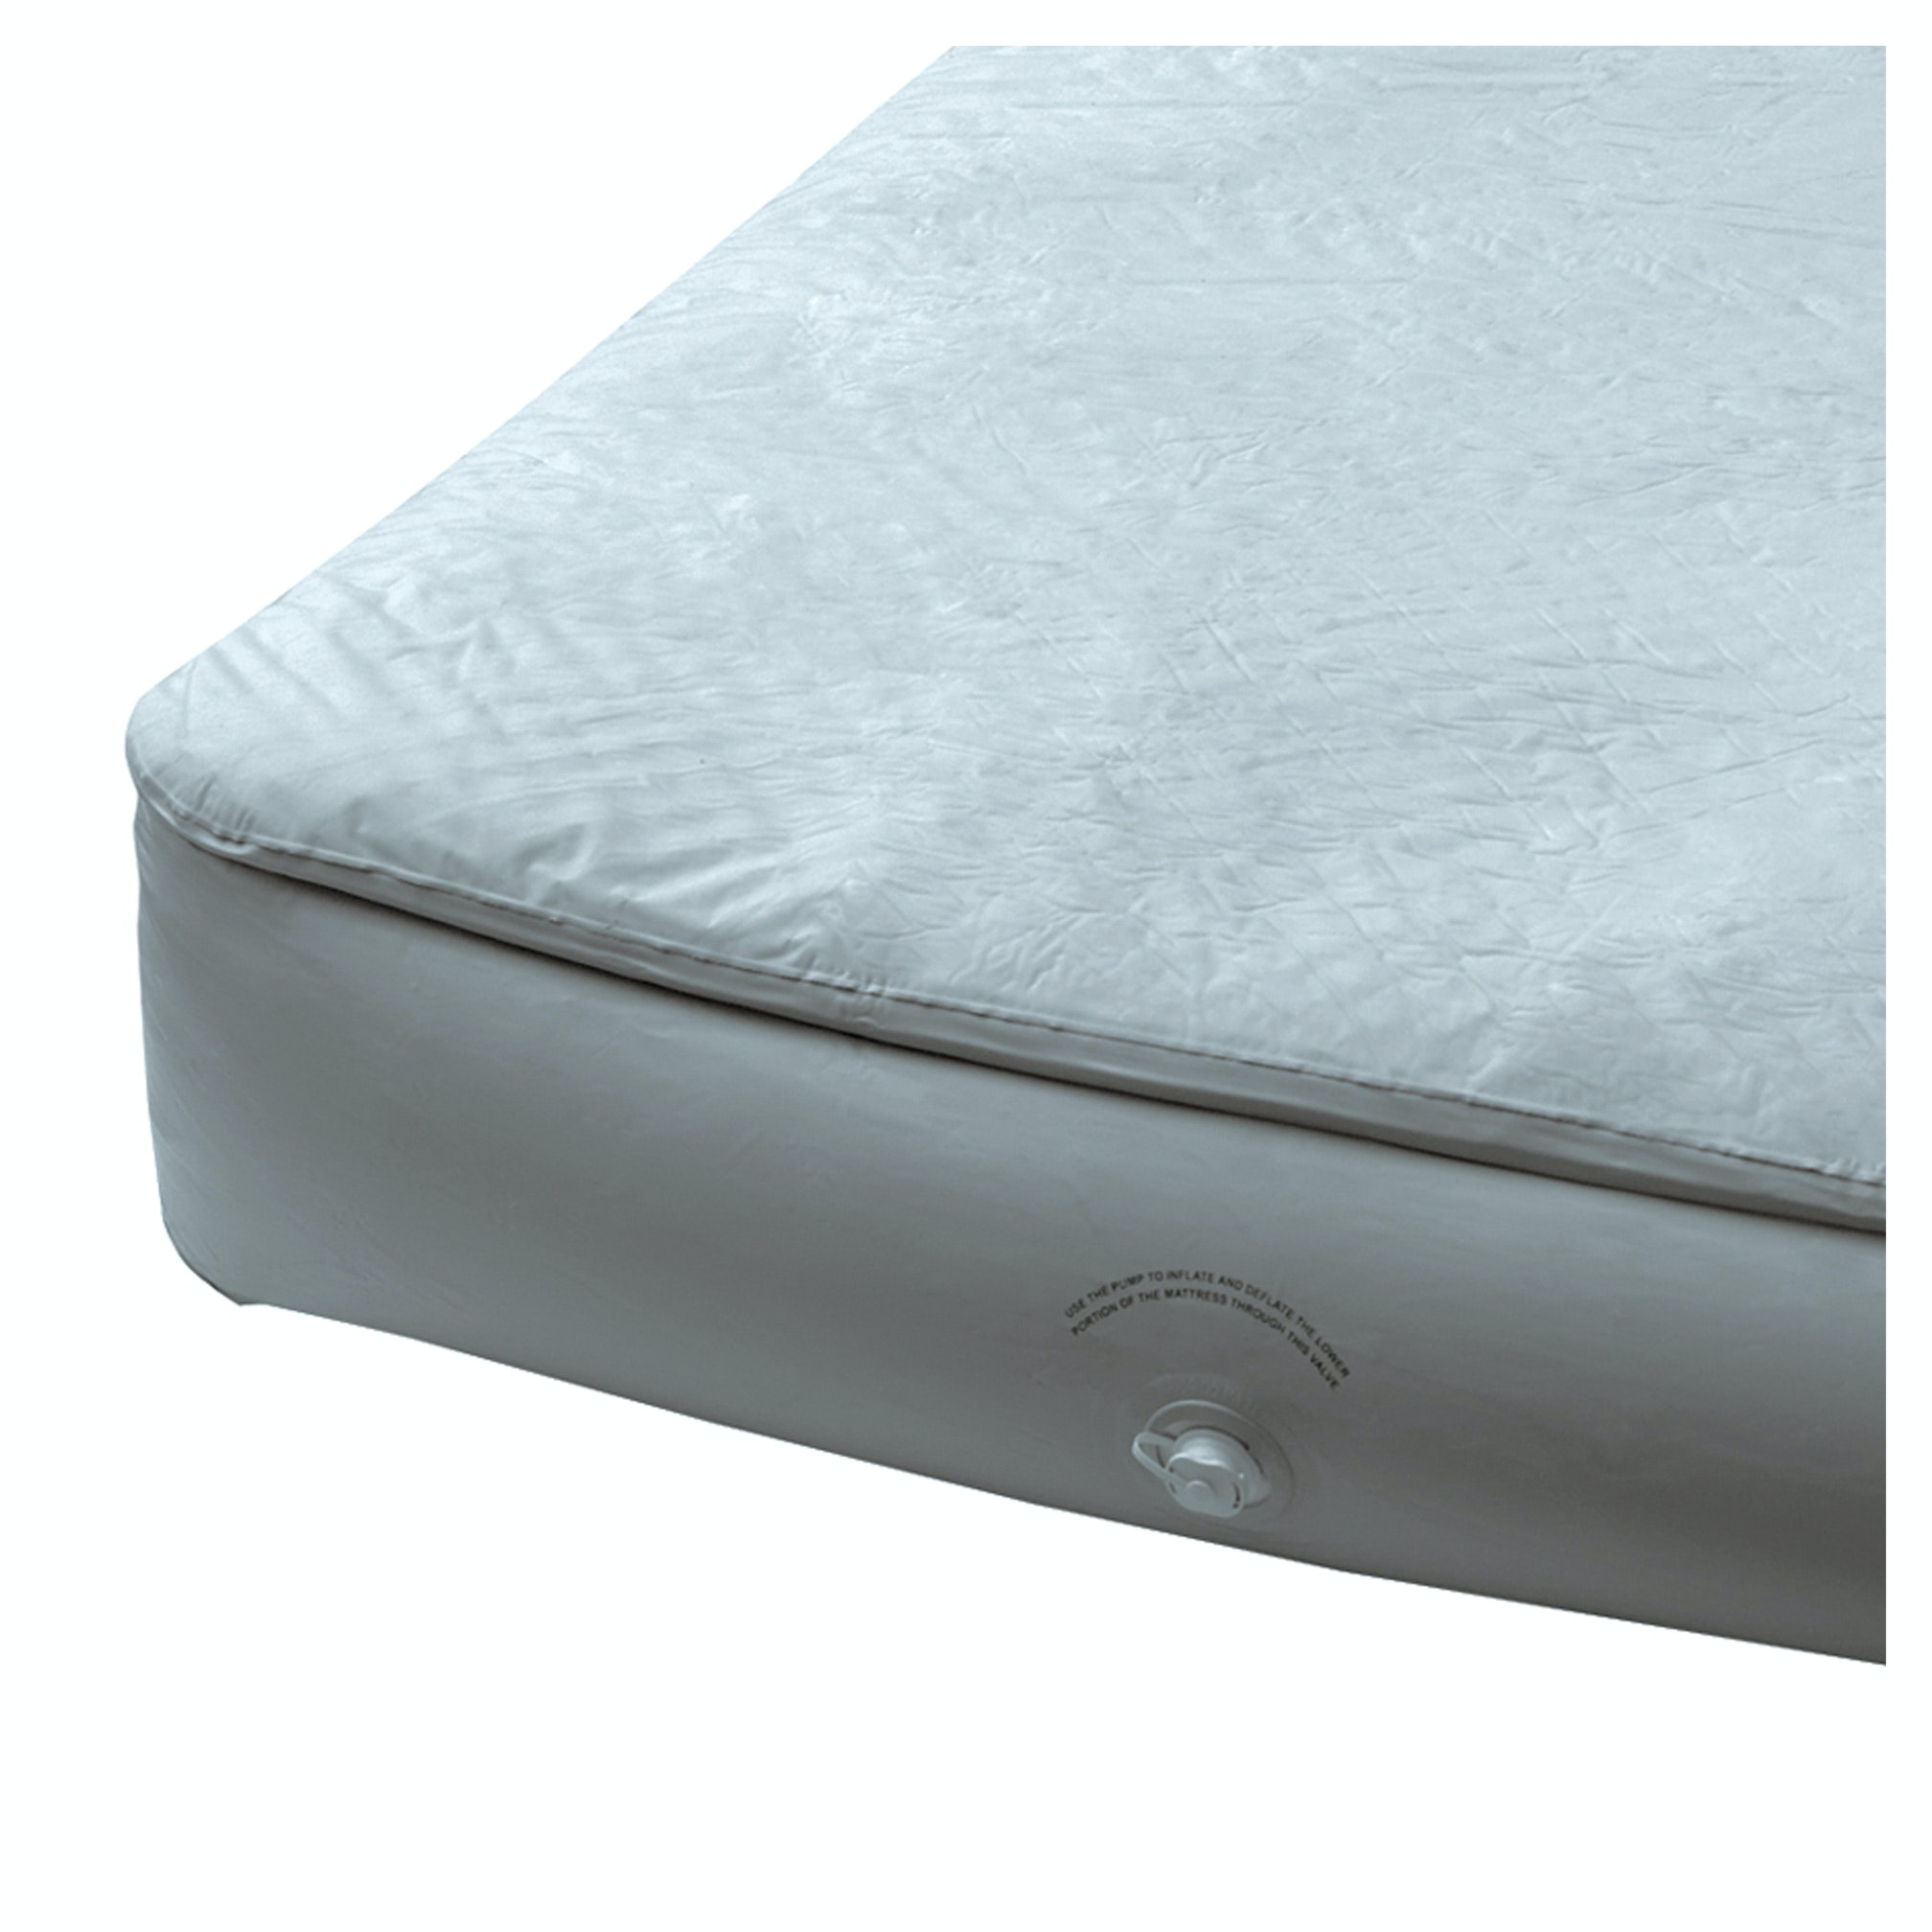 accusure decubitus accu mattress air sure product buy anti